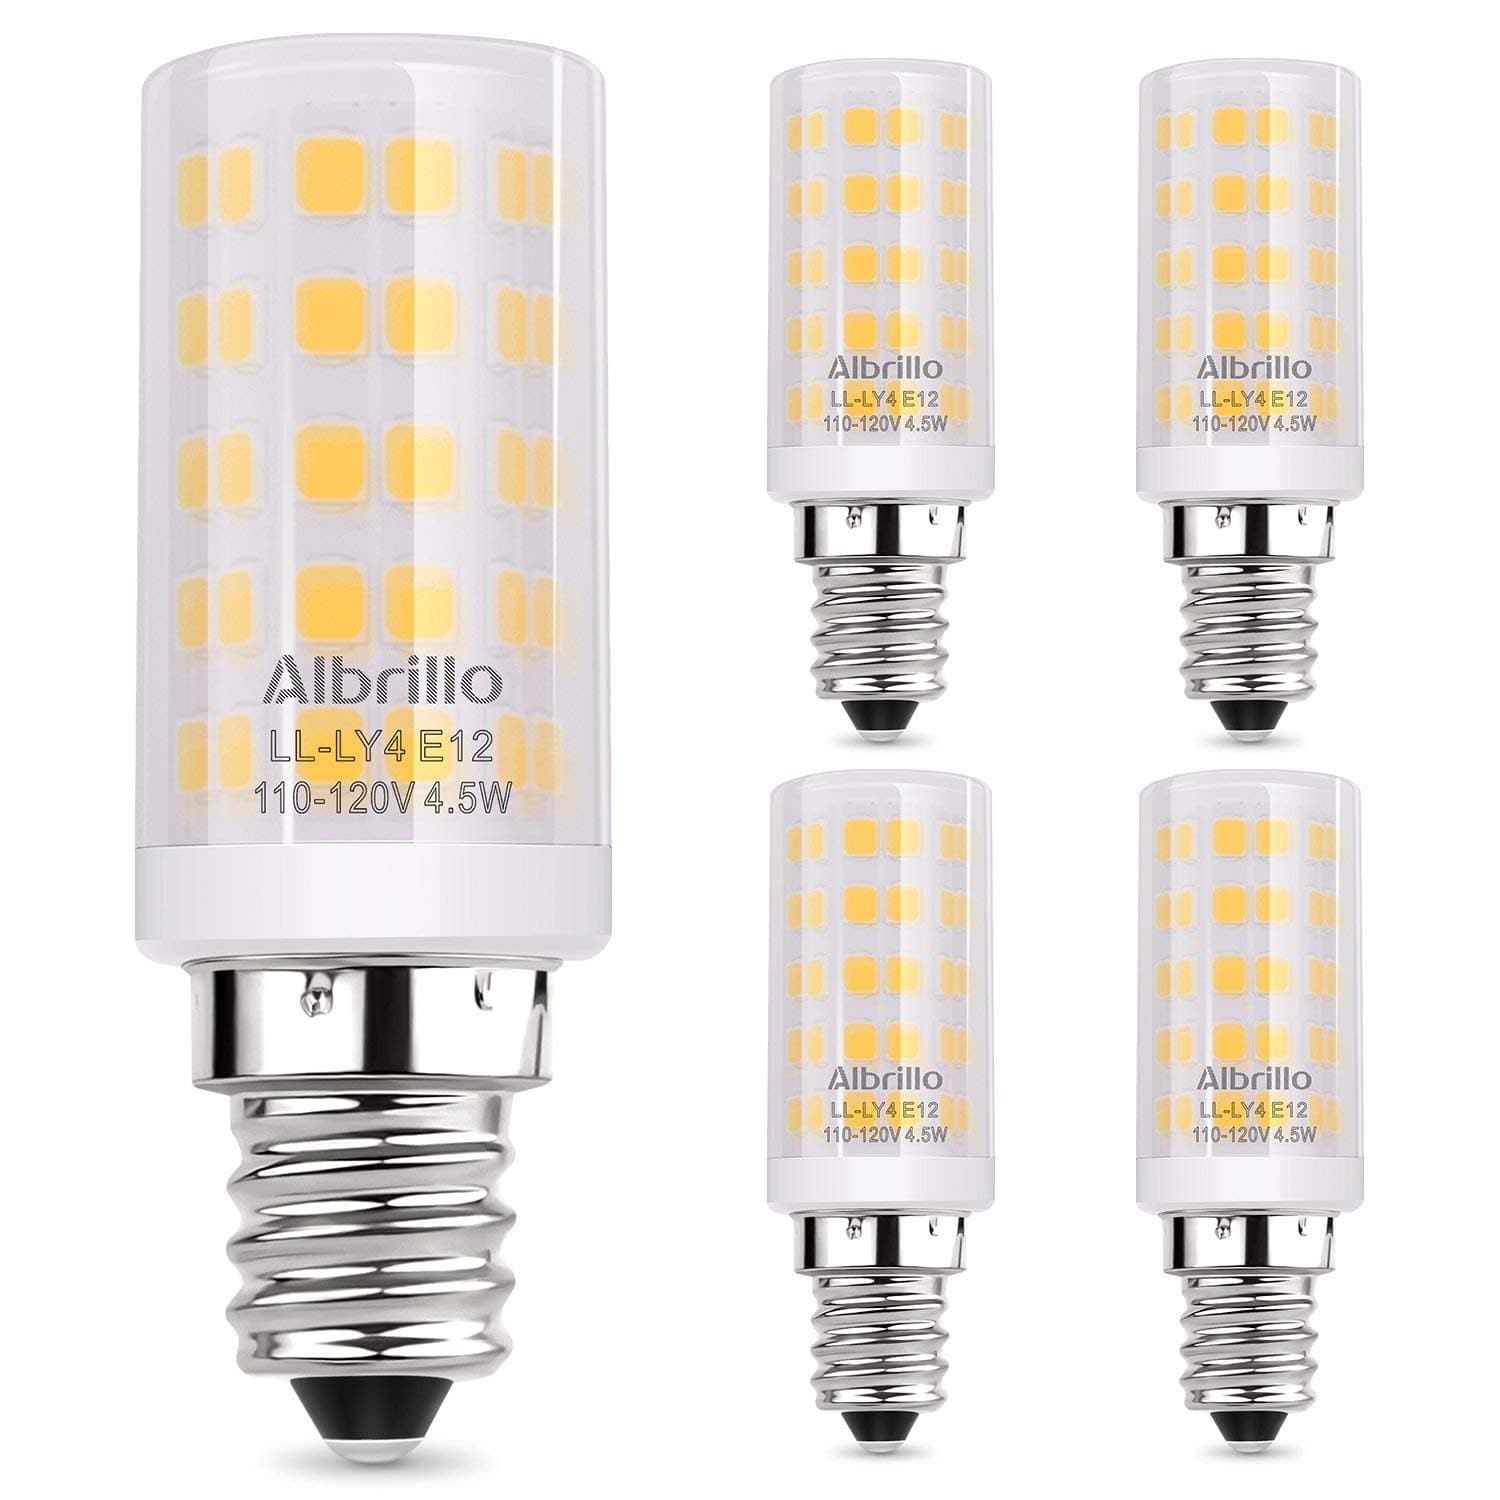 Albrillo E12 Candelabra LED Light Bulbs: 5-pack $7 or 3-pack Dimmable $5.50